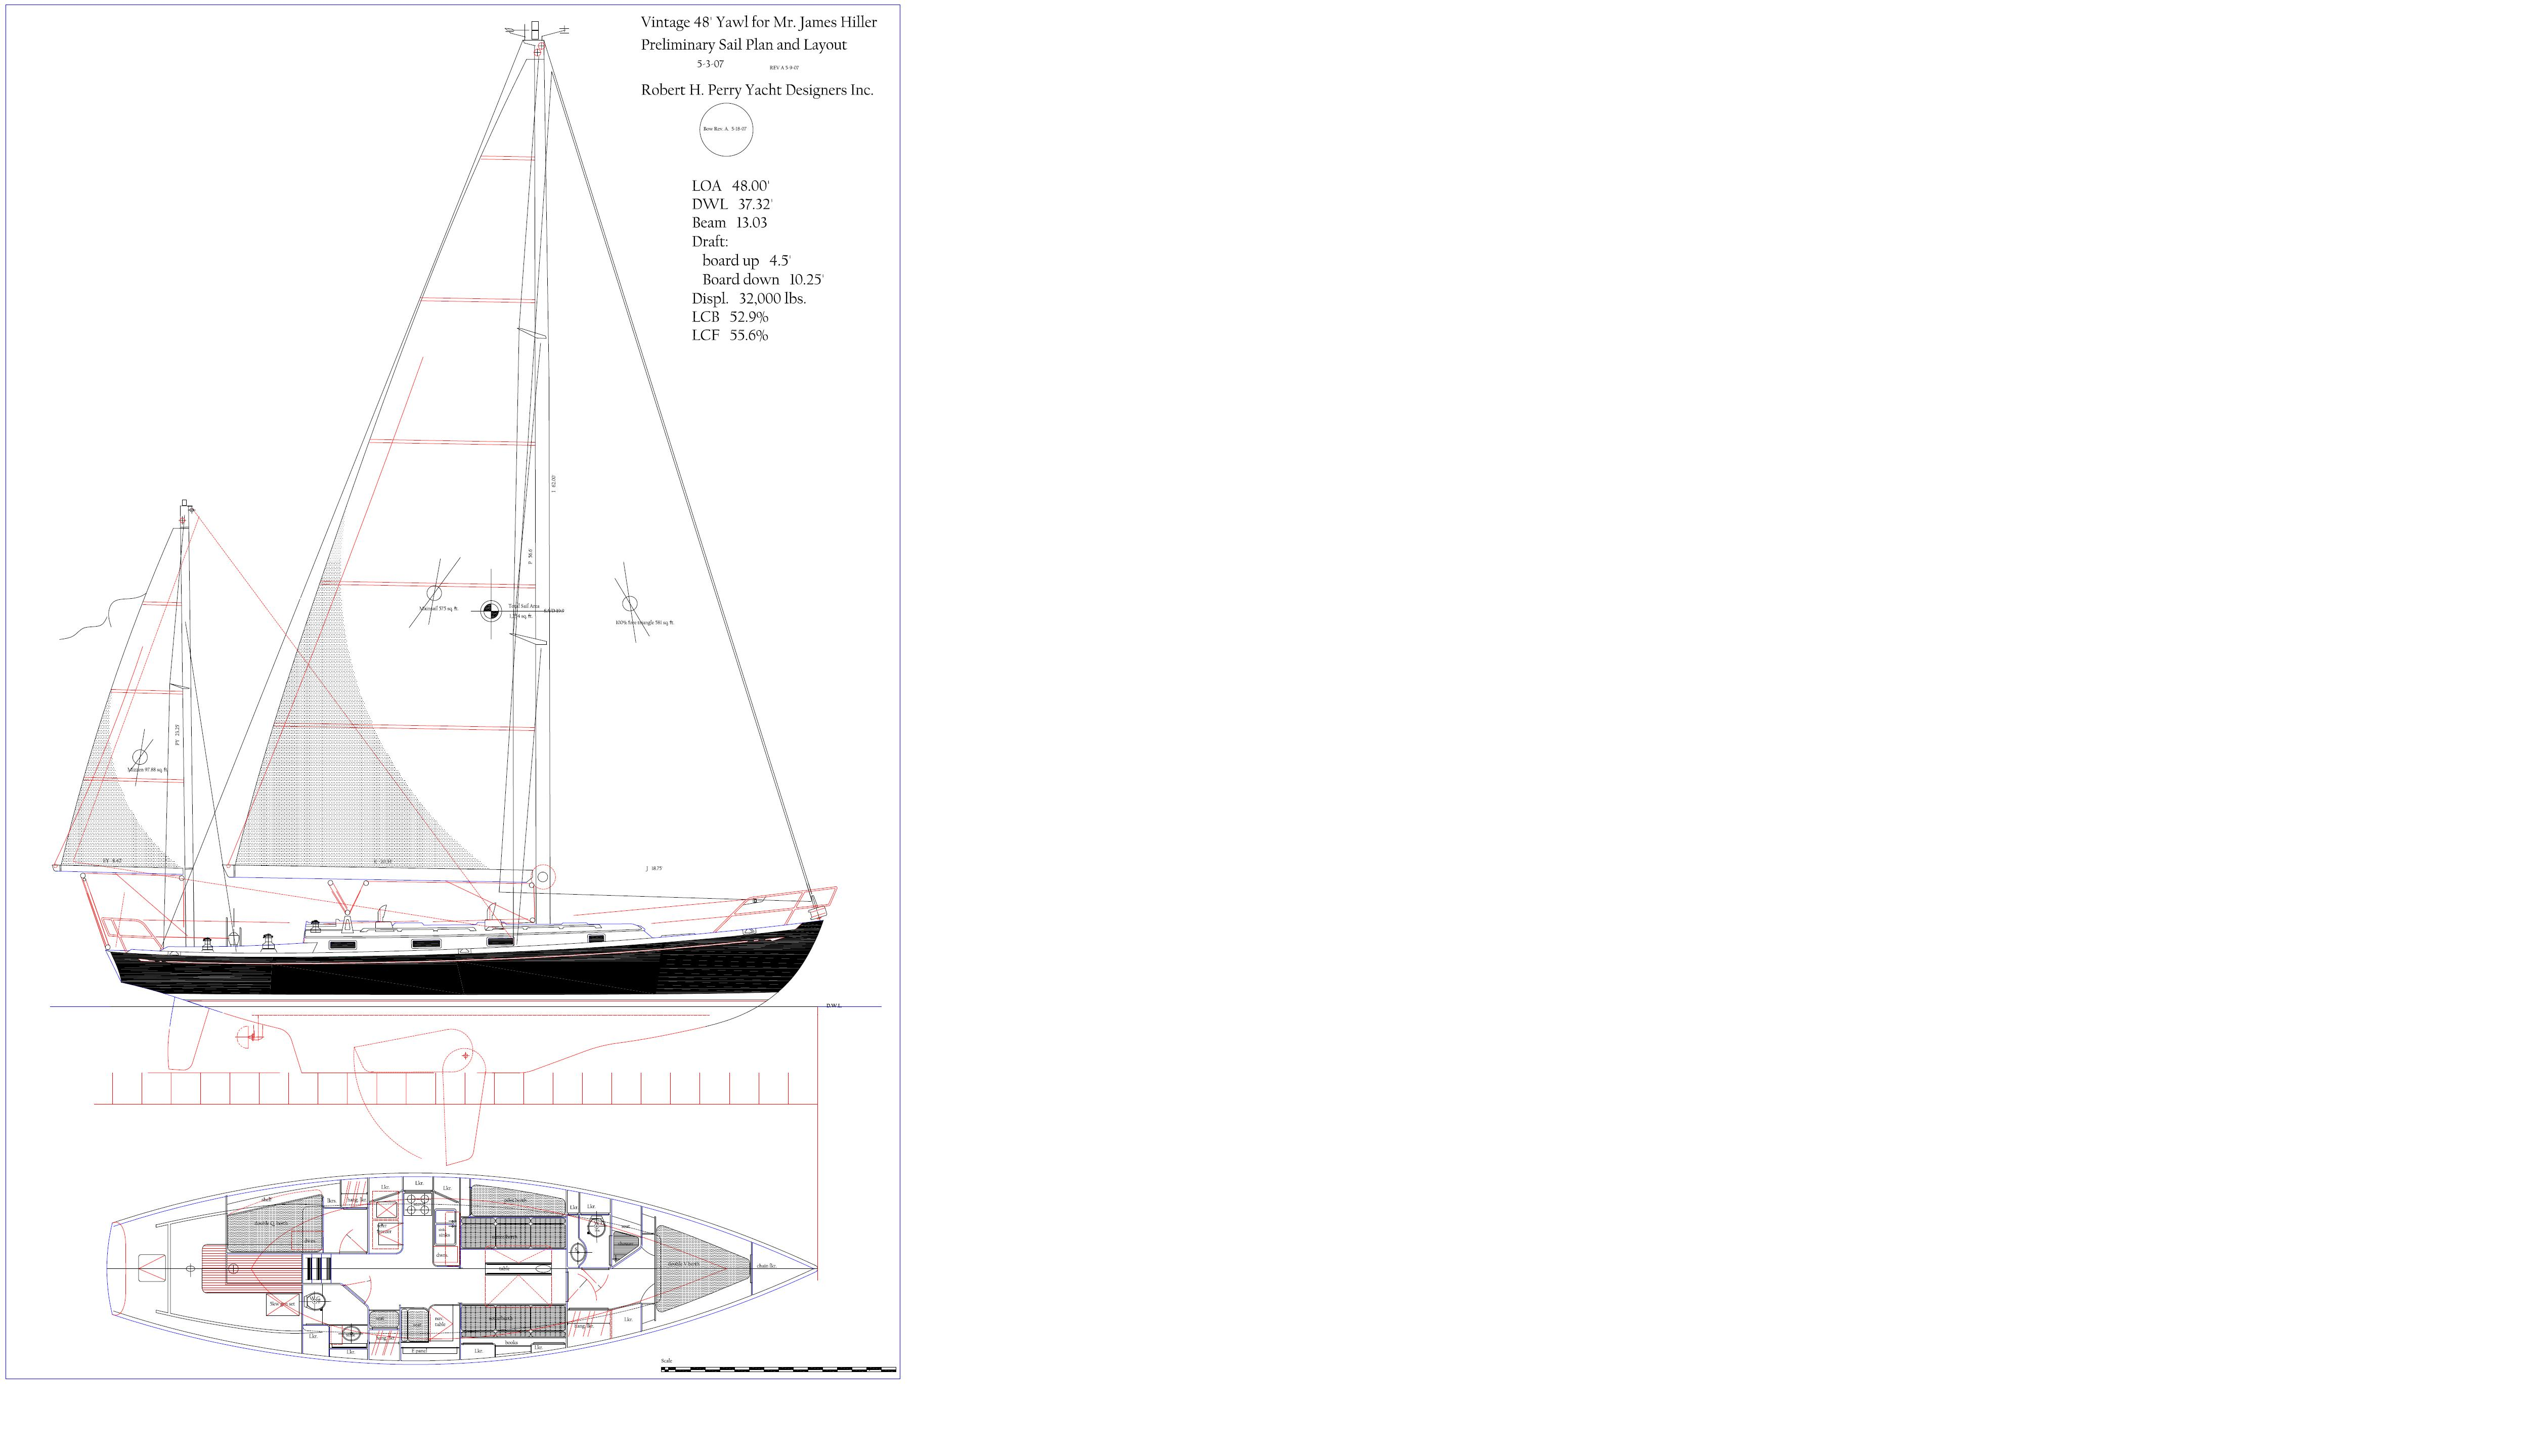 http://perryboat.sail2live.com/yacht_design_according_to_perry/perry%20yawl%203.JPG